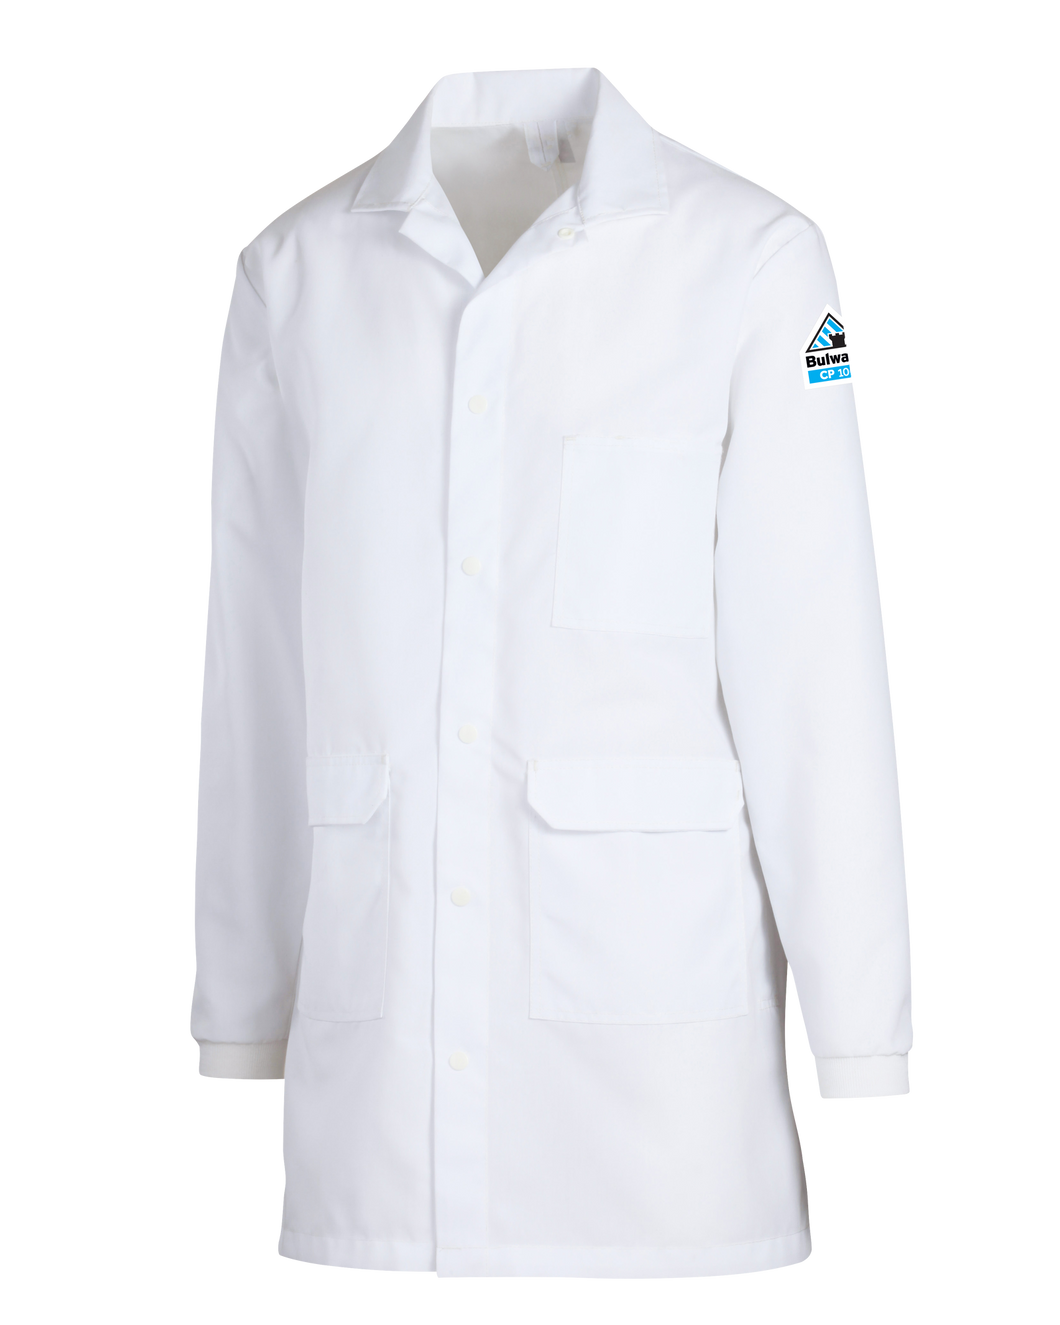 Bulwark CP 352C Lightweight Chemical Splash Protection Labcoat